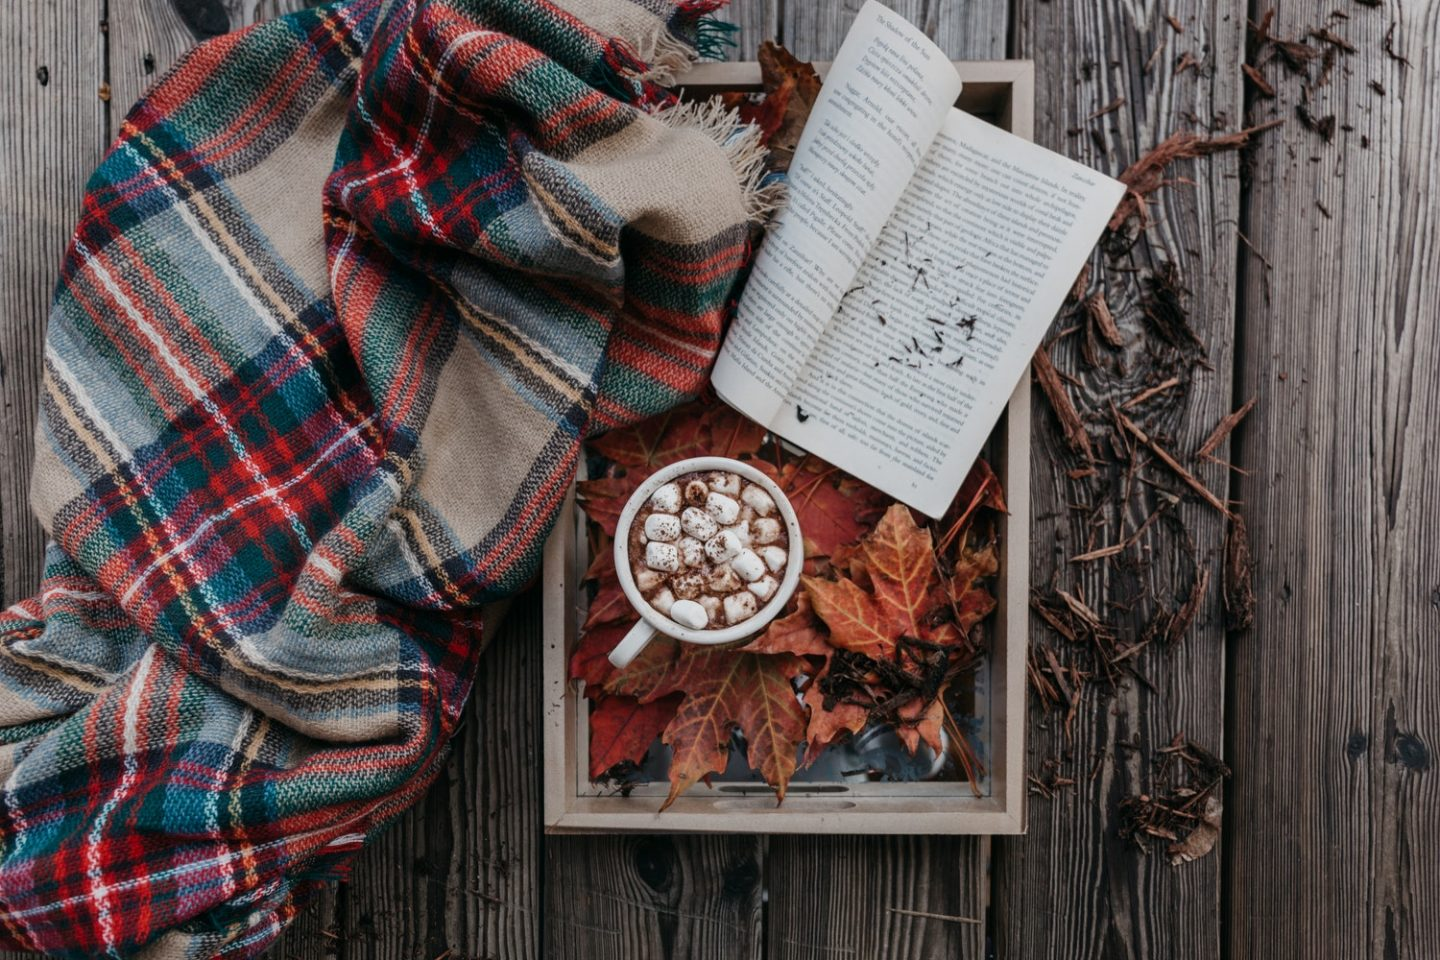 Autumn Vibes: Bucket List For the Season